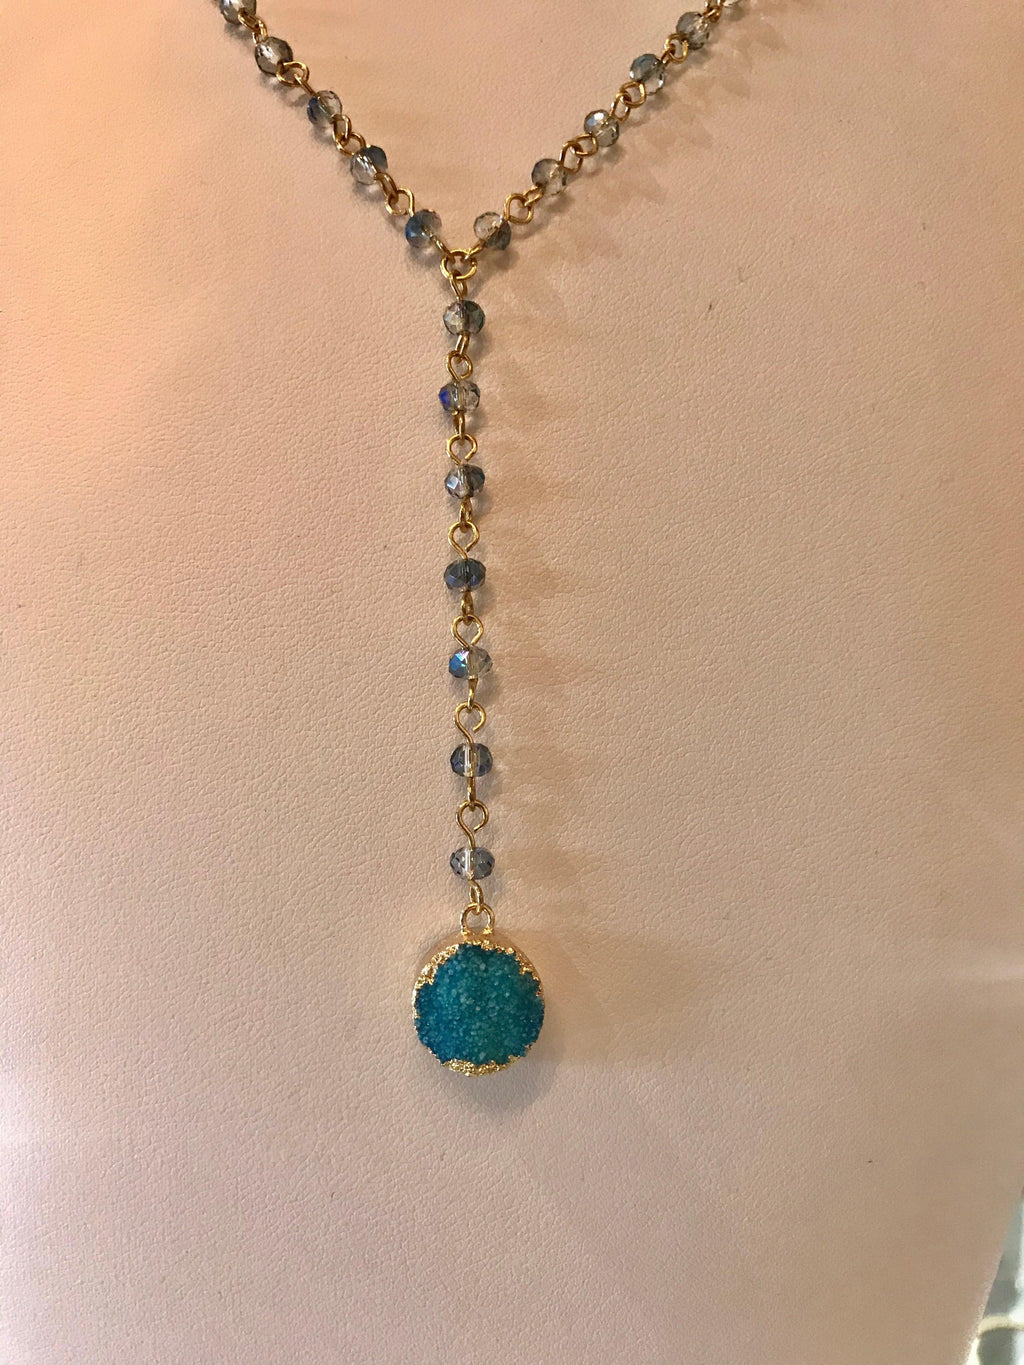 Garbo Blue Round Druzy Glass Bead Layer Necklace